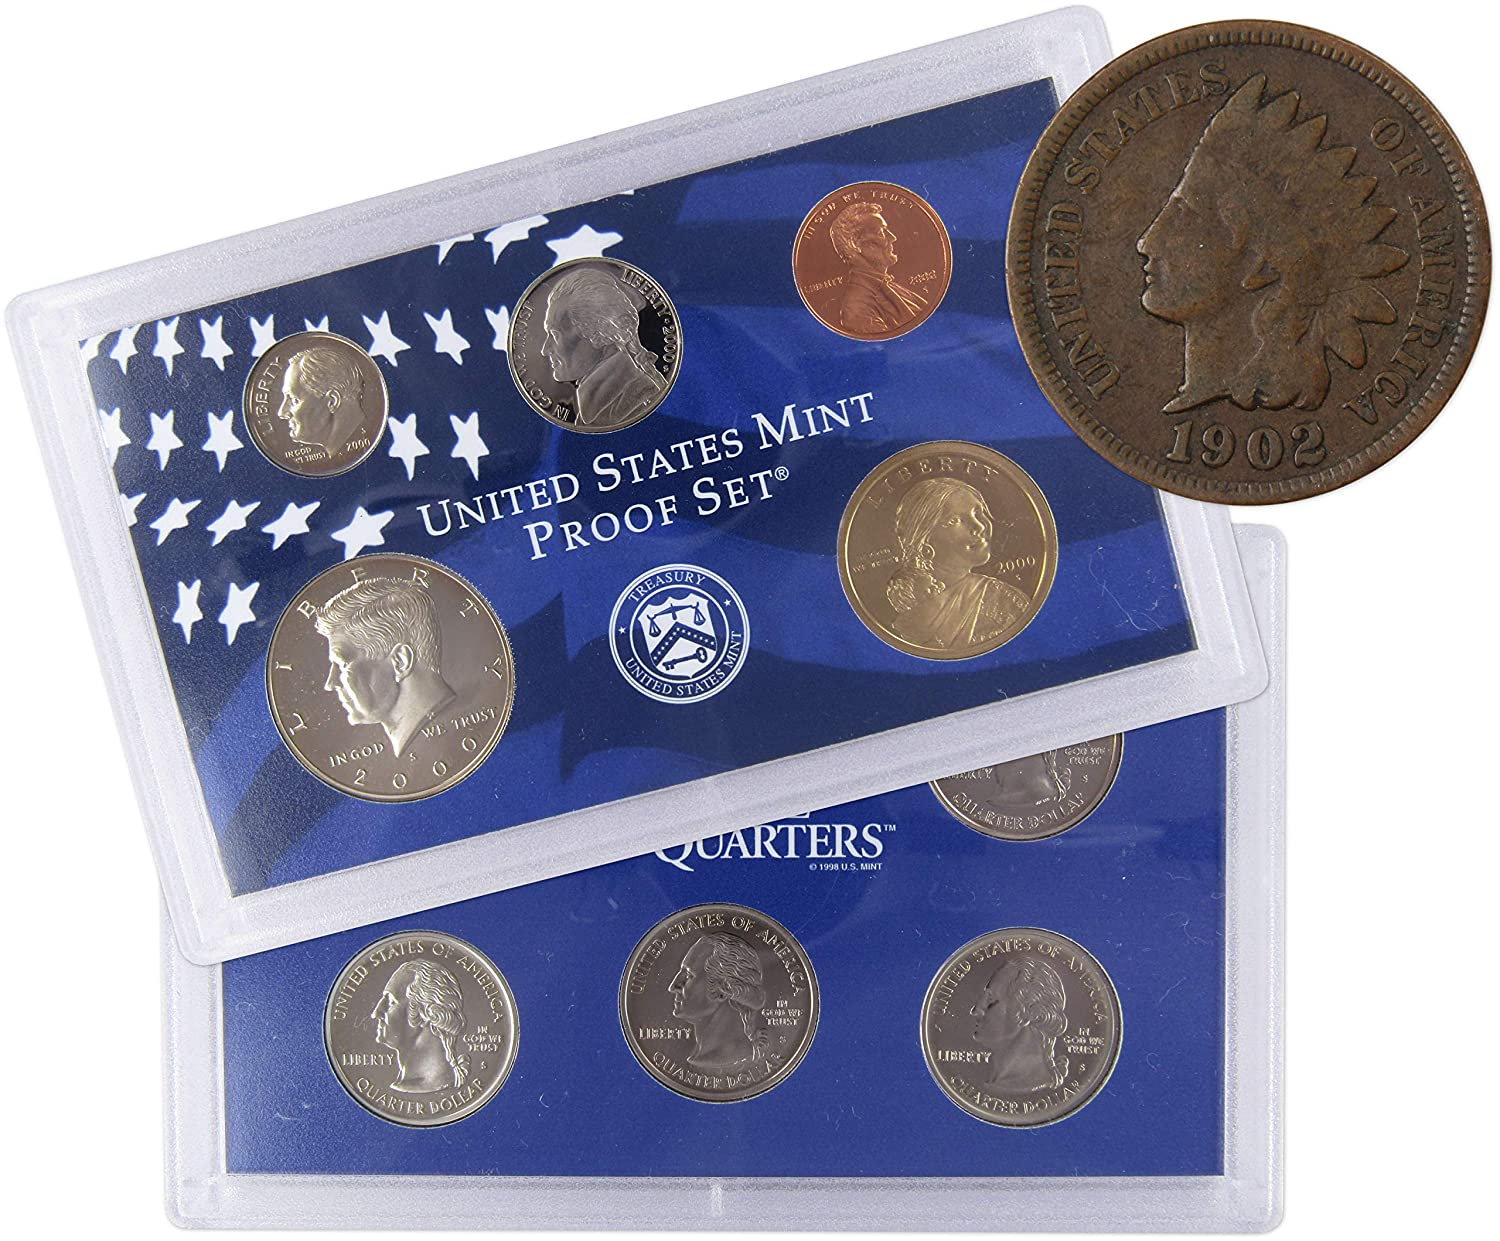 1972 S U.S Mint Proof Set with 1902 1c Indian Head Cent G Good Coin Lot